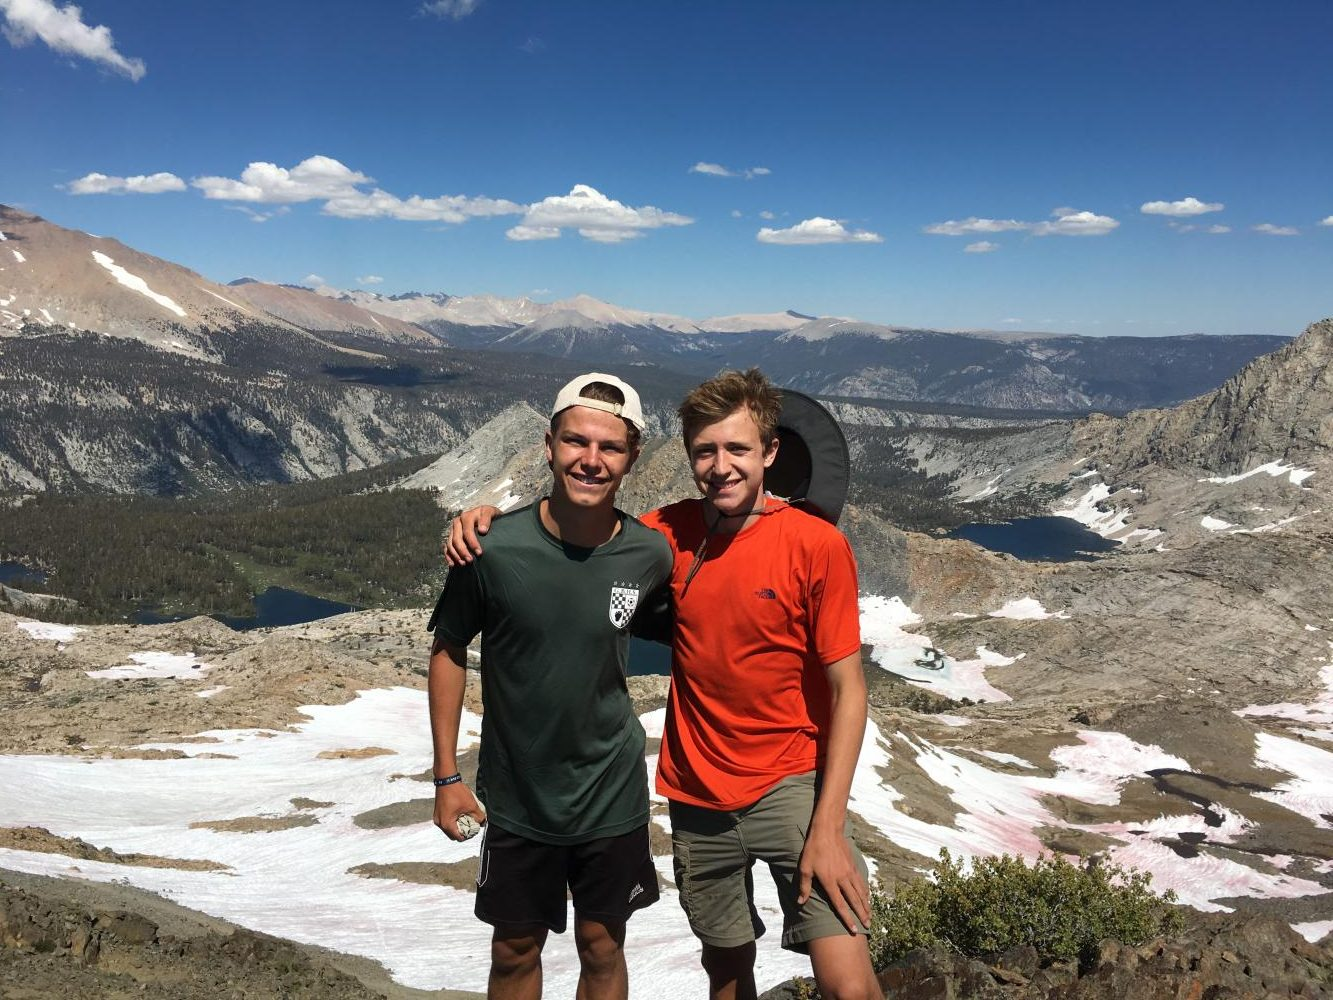 From left to right: Jason Dell'Orto and Brayden Johnk The reward after hiking up Black Rock Pass in Sequoia National Park, 11,600 ft